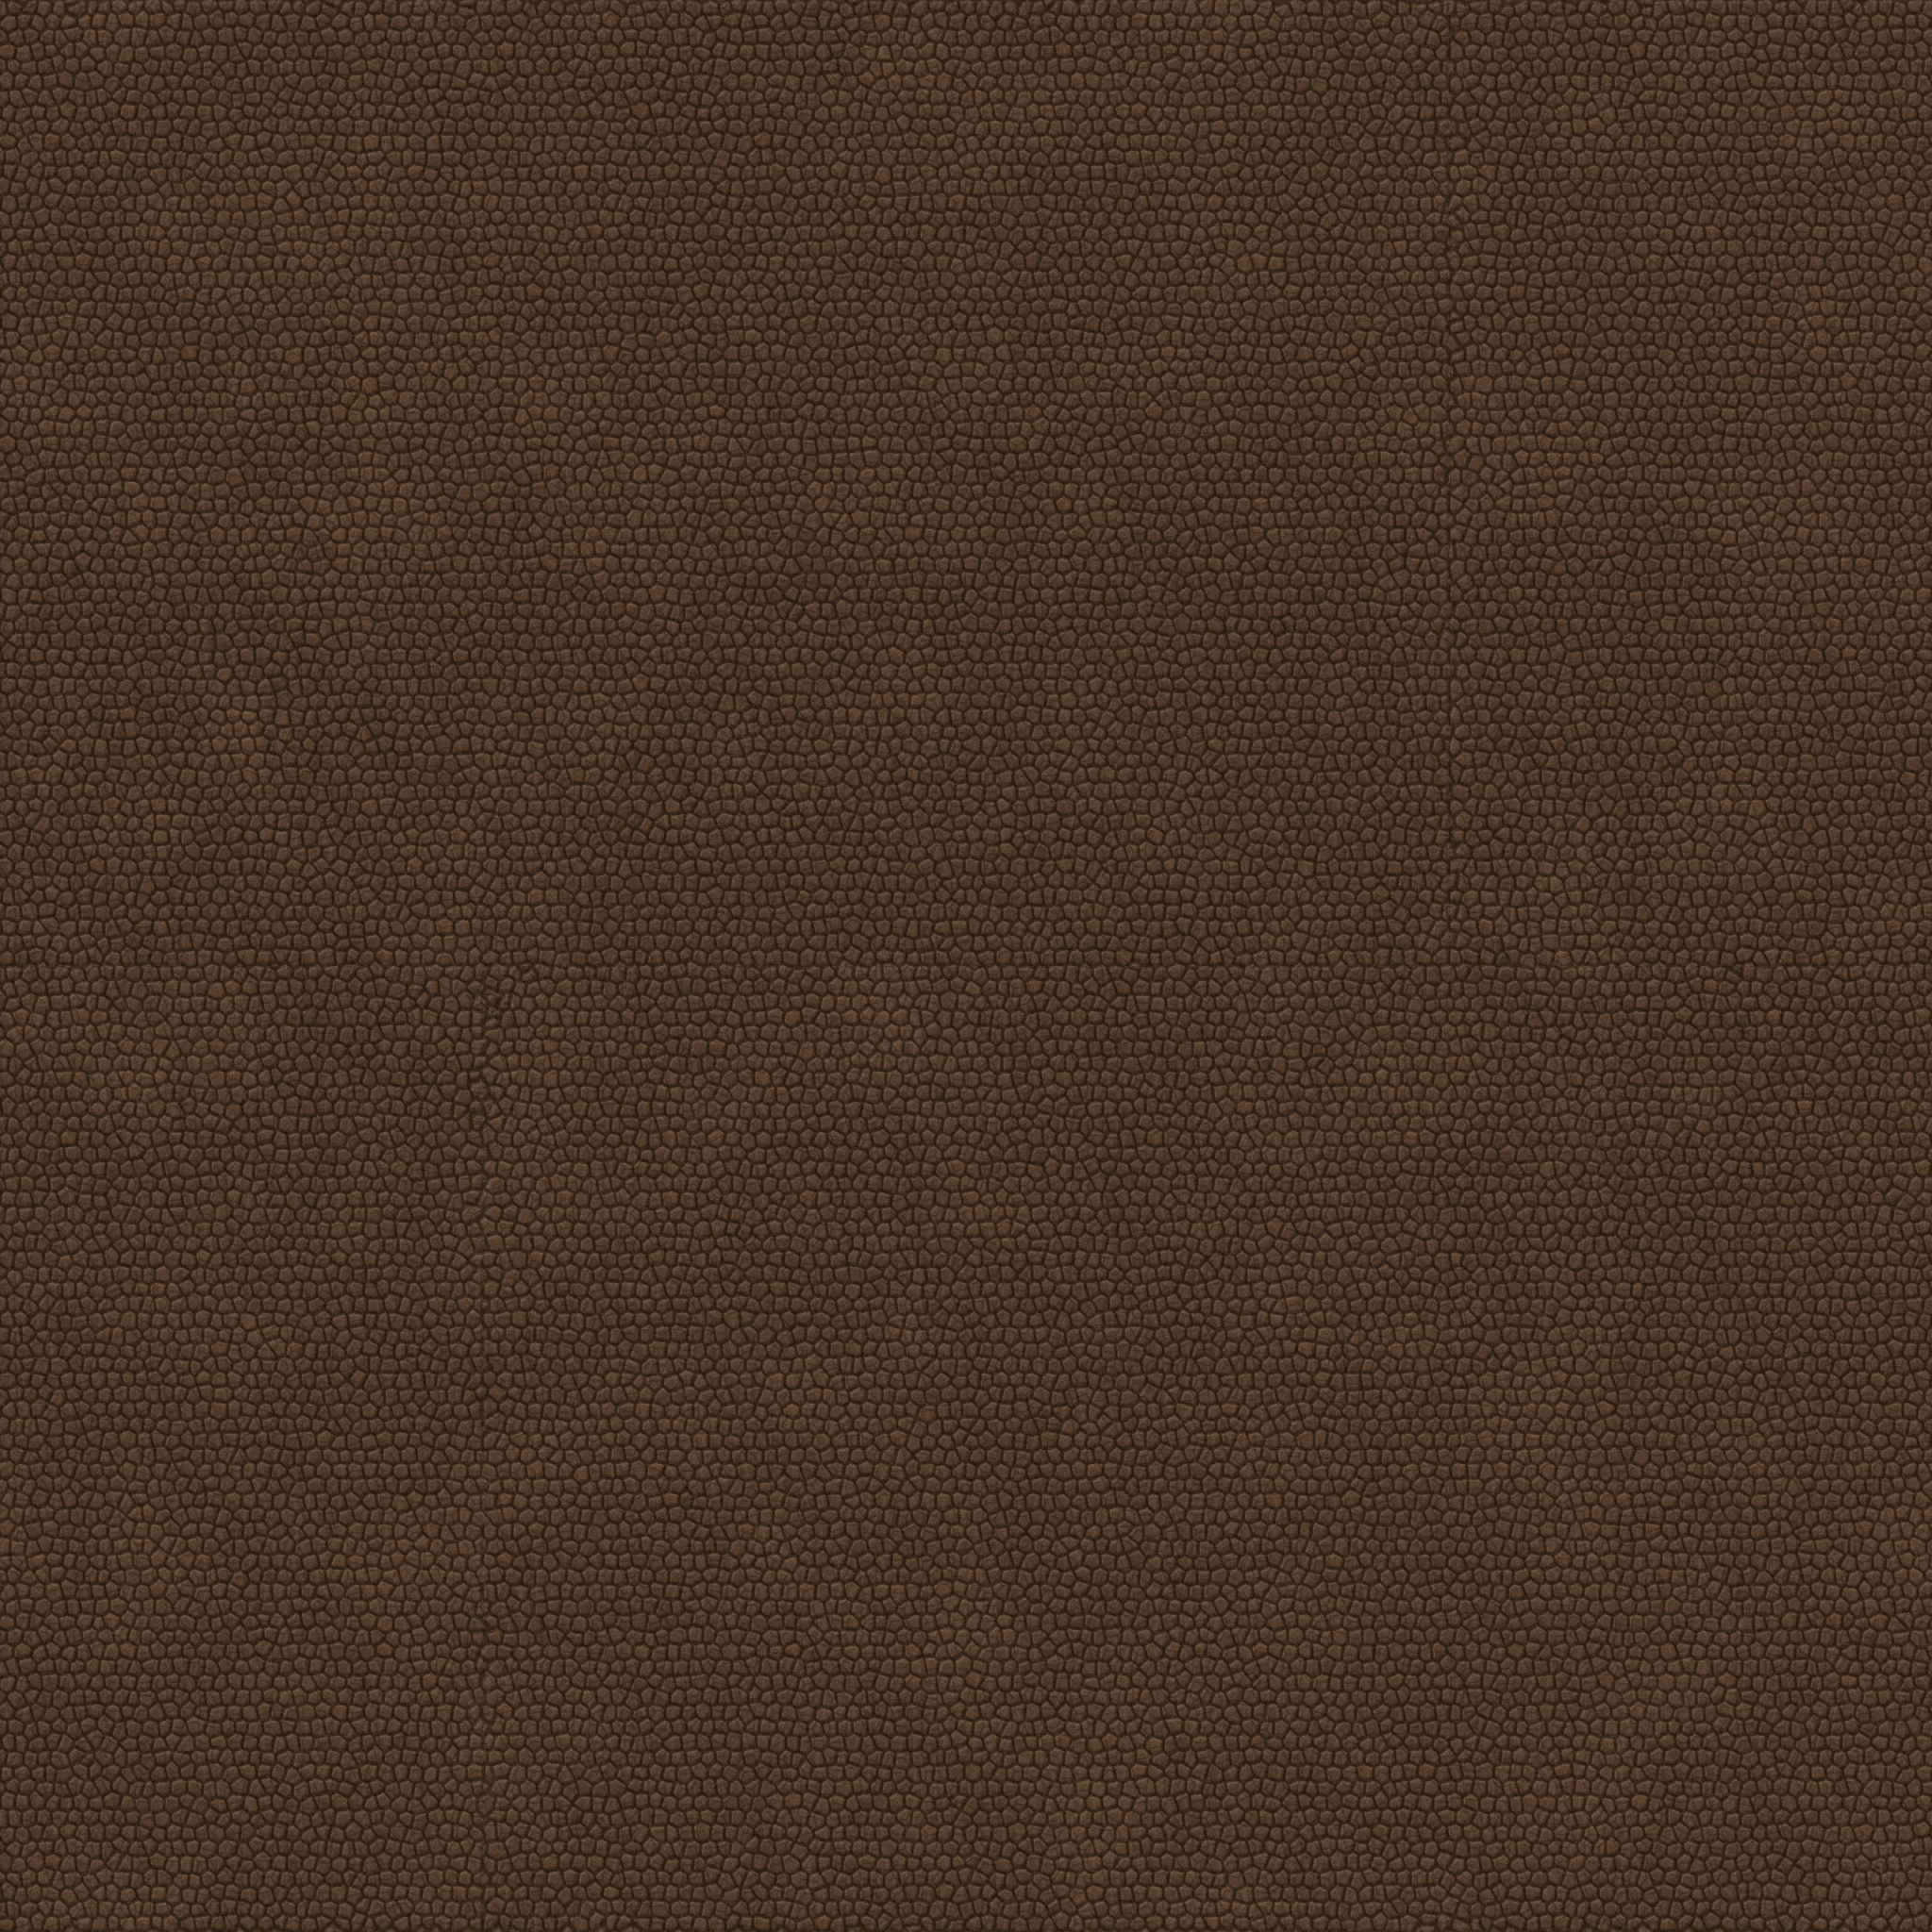 Tile For Small Bathroom Dark Brown Leather Texture Tileable 2048x2048 By